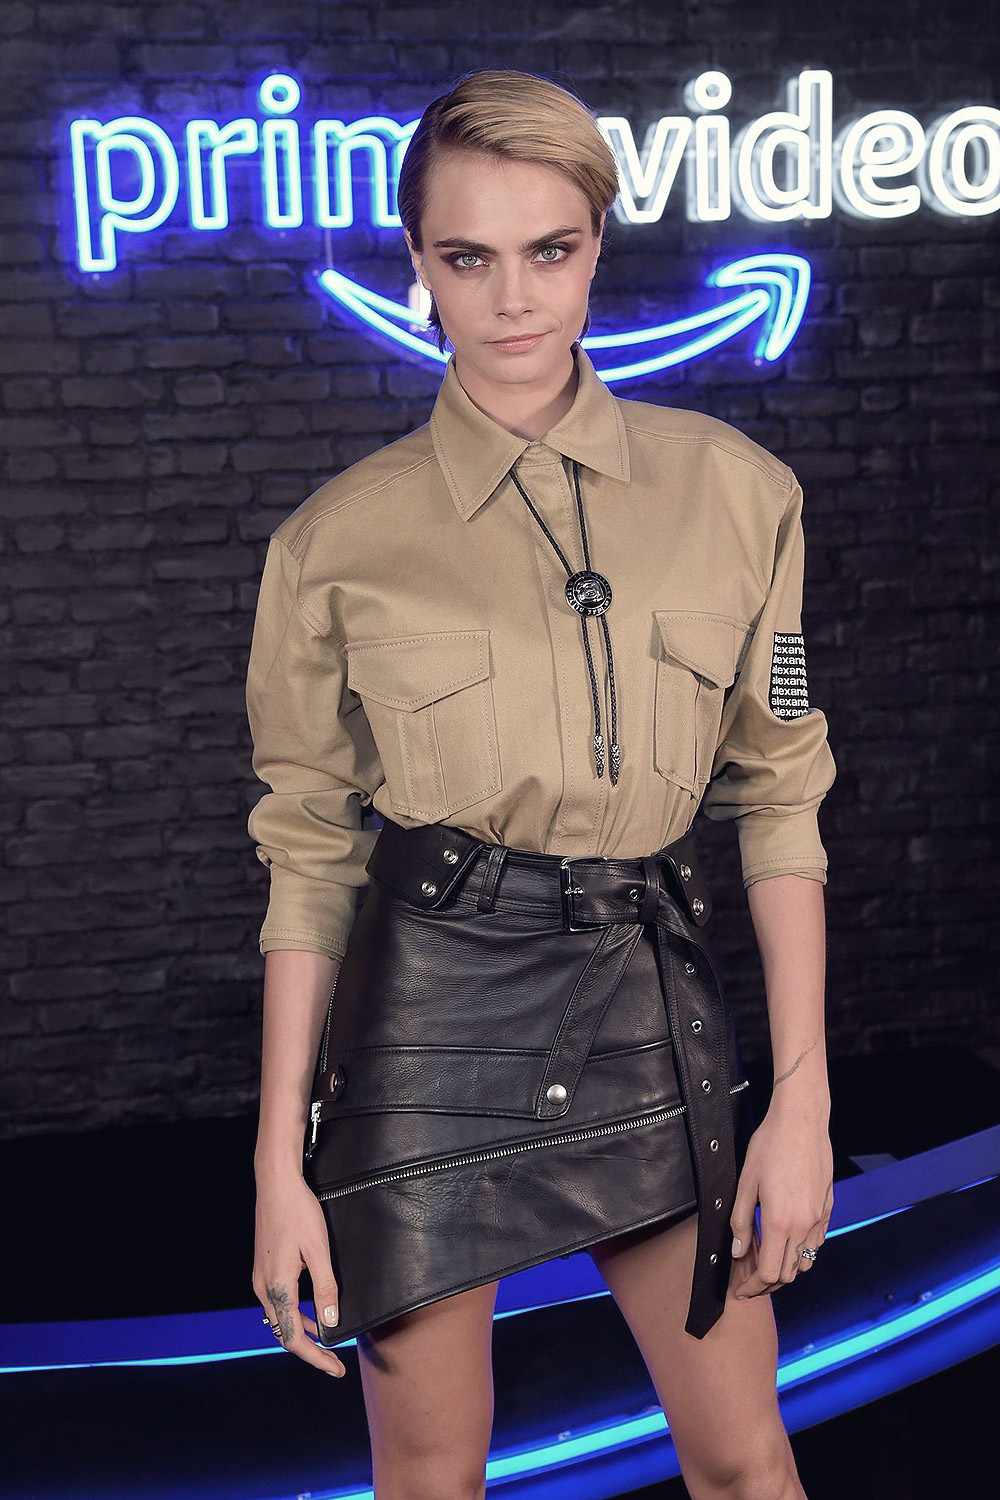 Cara Delevingne attends the Amazon Prime Video Europe Autumn Party